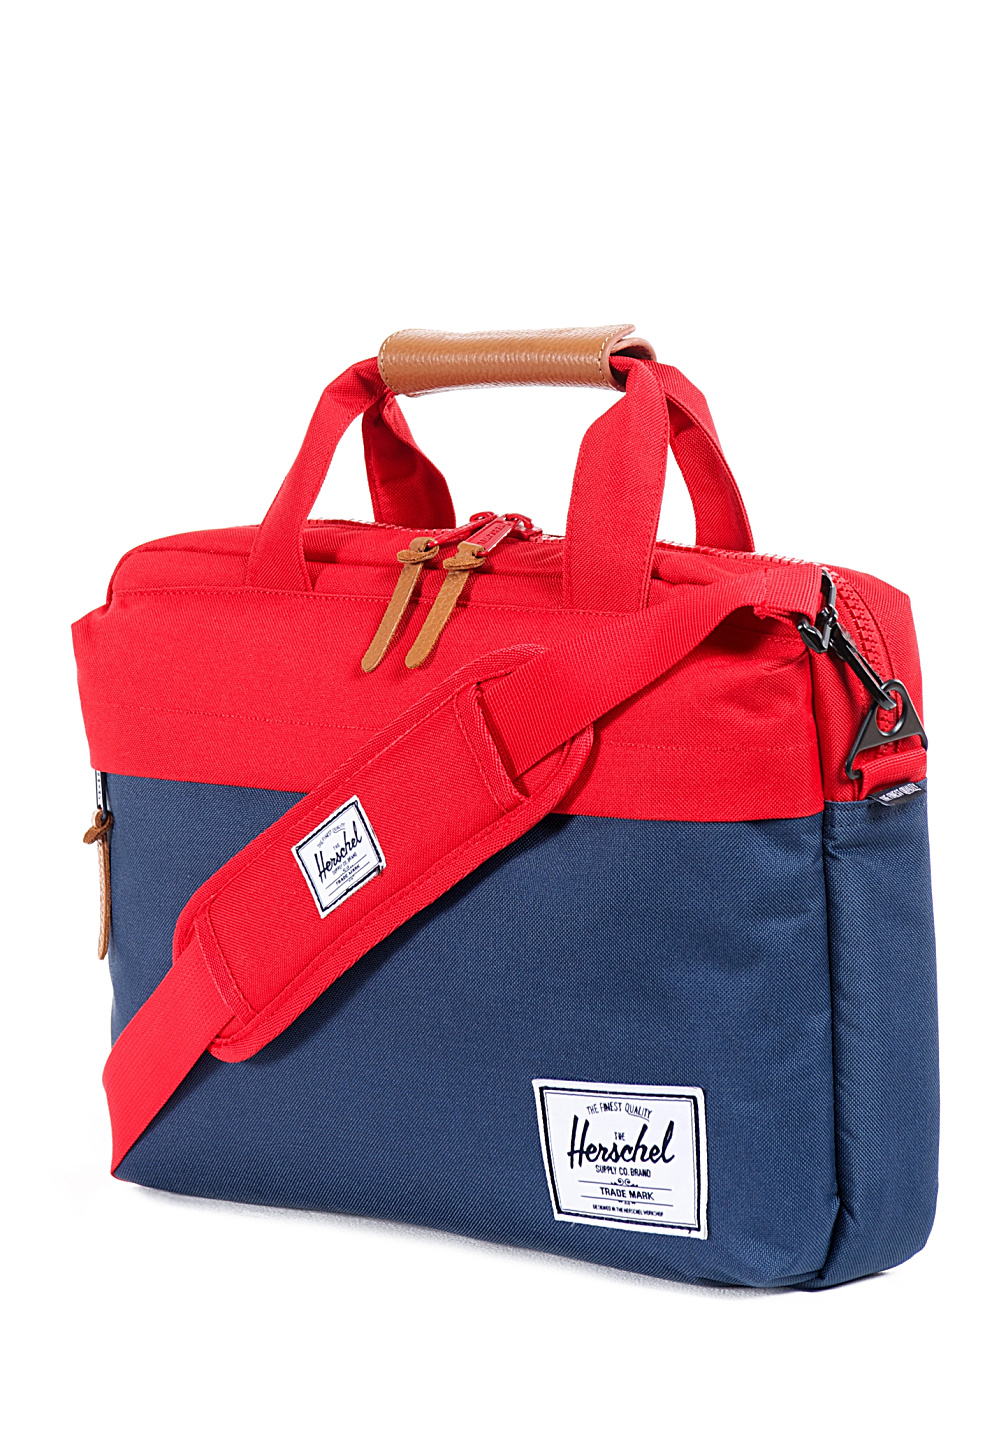 Next. This product is currently out of stock. Herschel SUPPLY CO. Clark - Messenger  Bag a81ca0079ec46